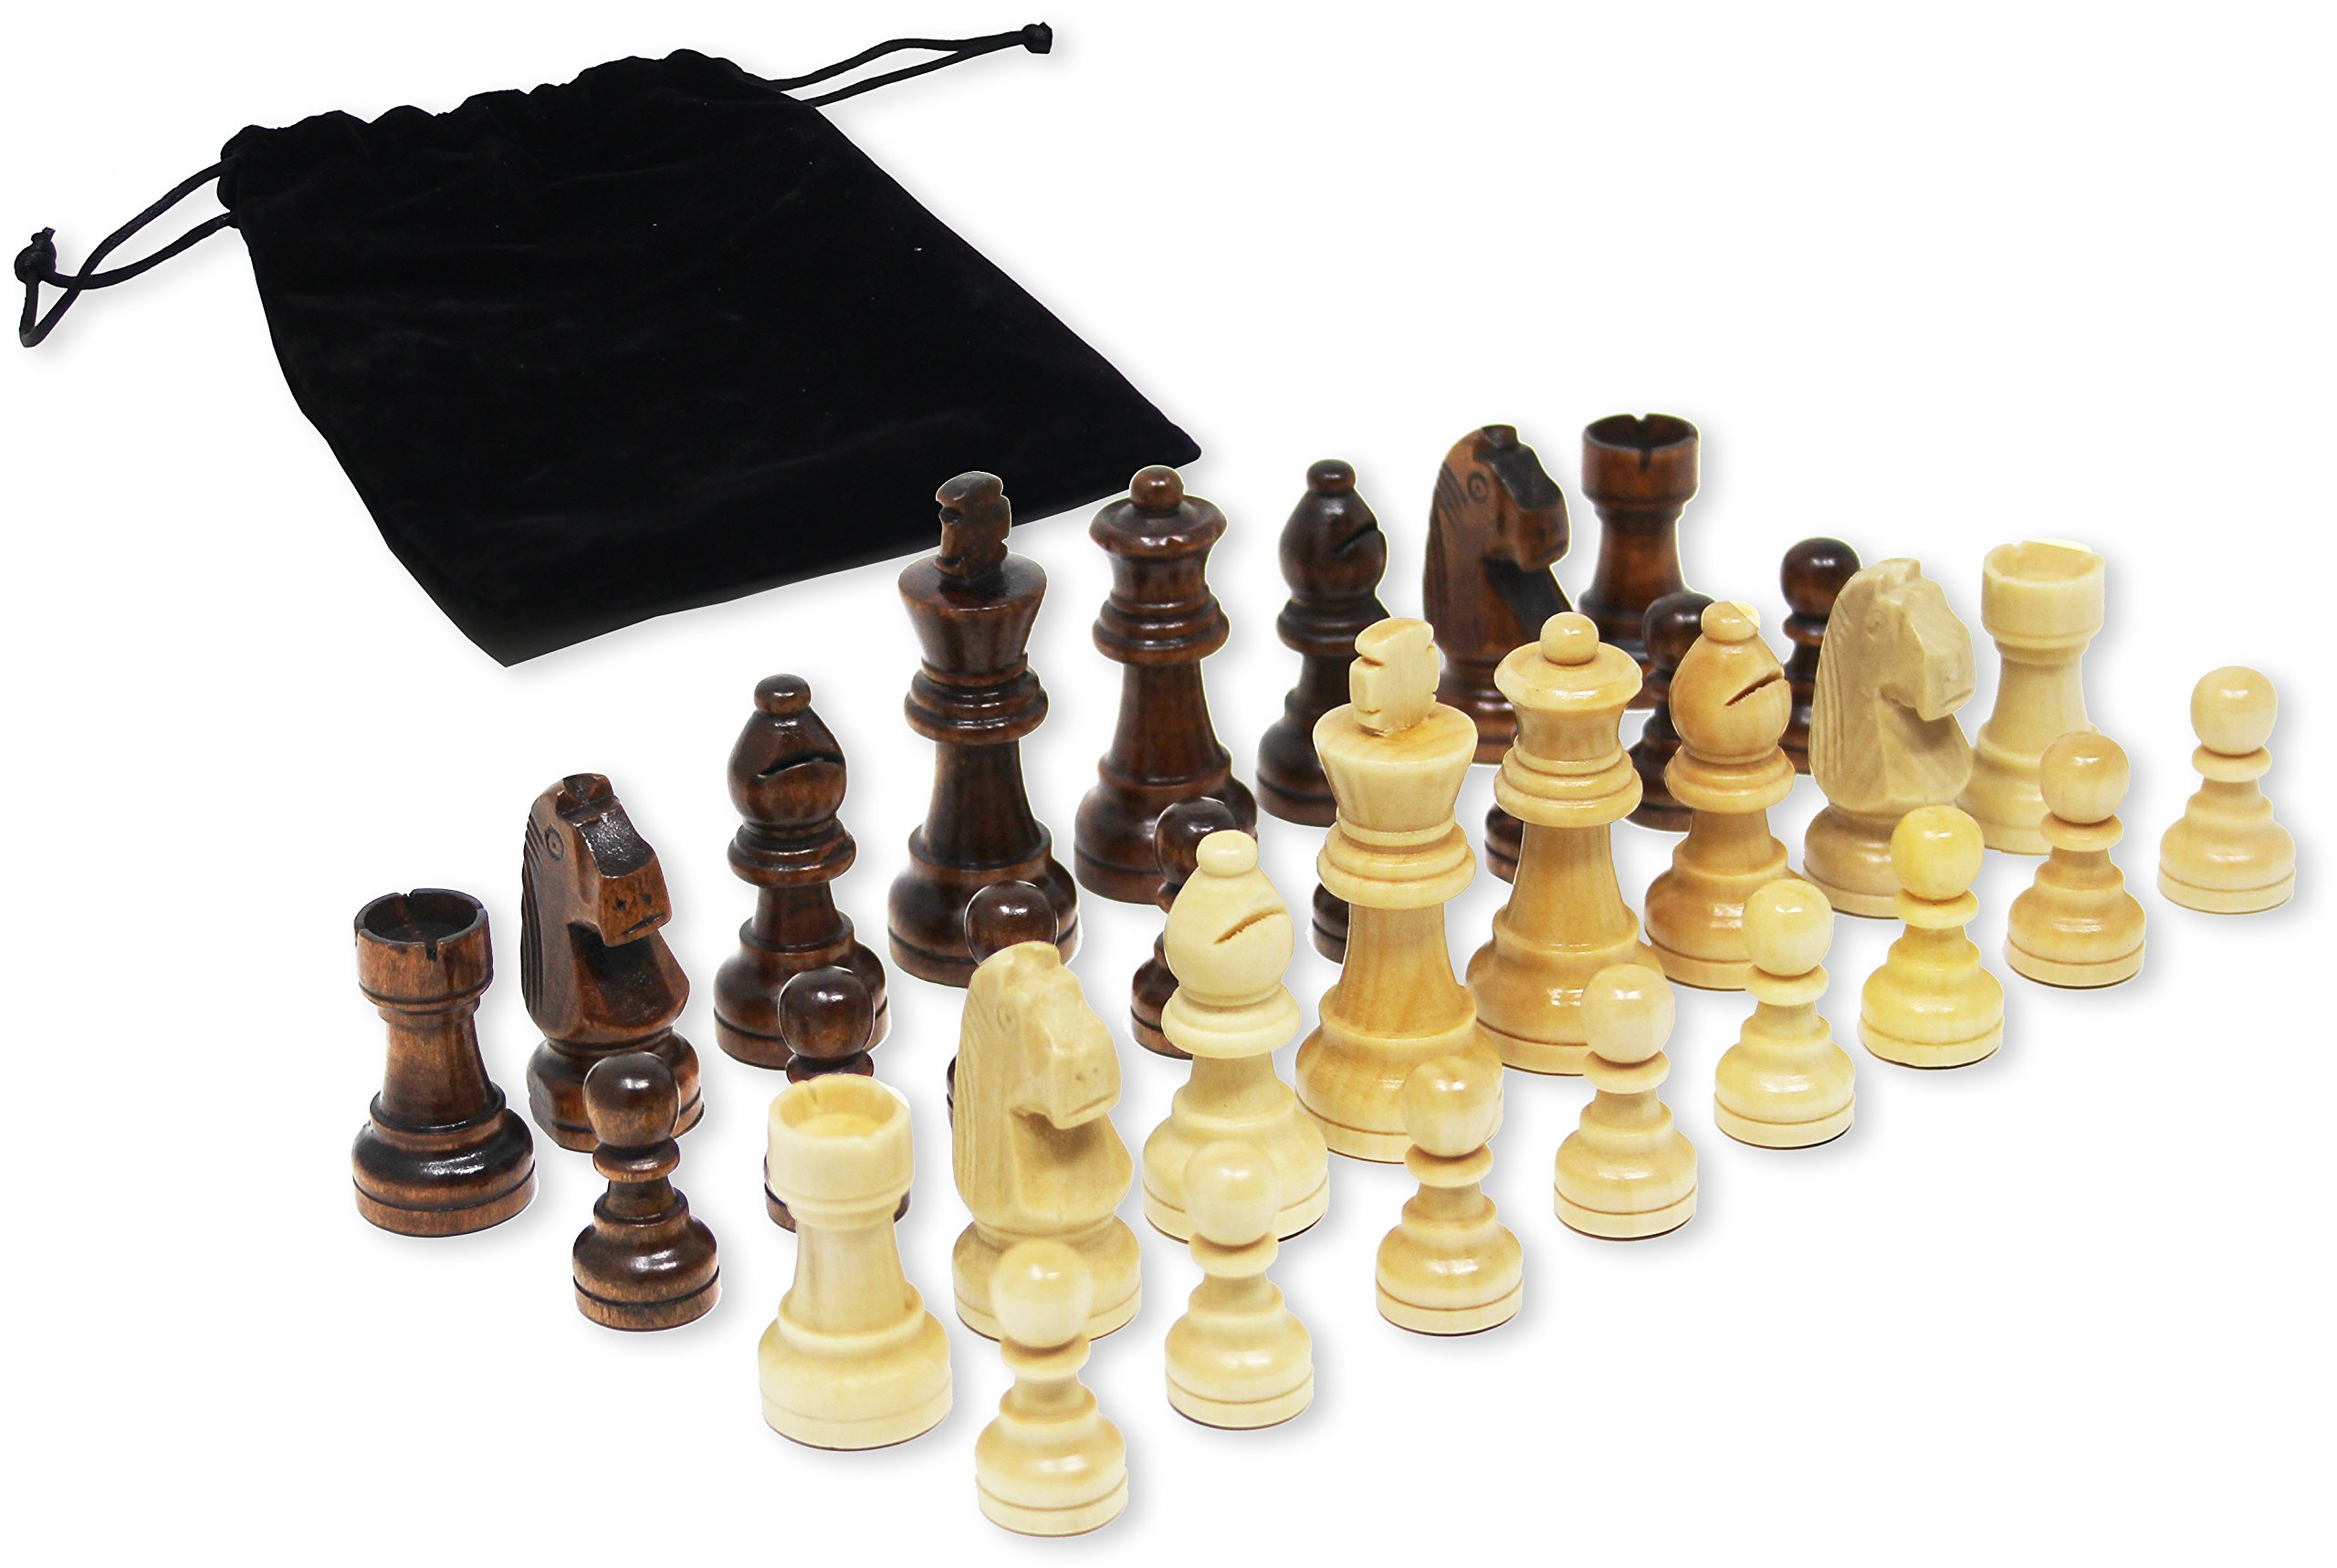 Da Vinci Staunton Wood Chess Pieces (32 Chessmen) & Storage Bag … (3 Inch King)